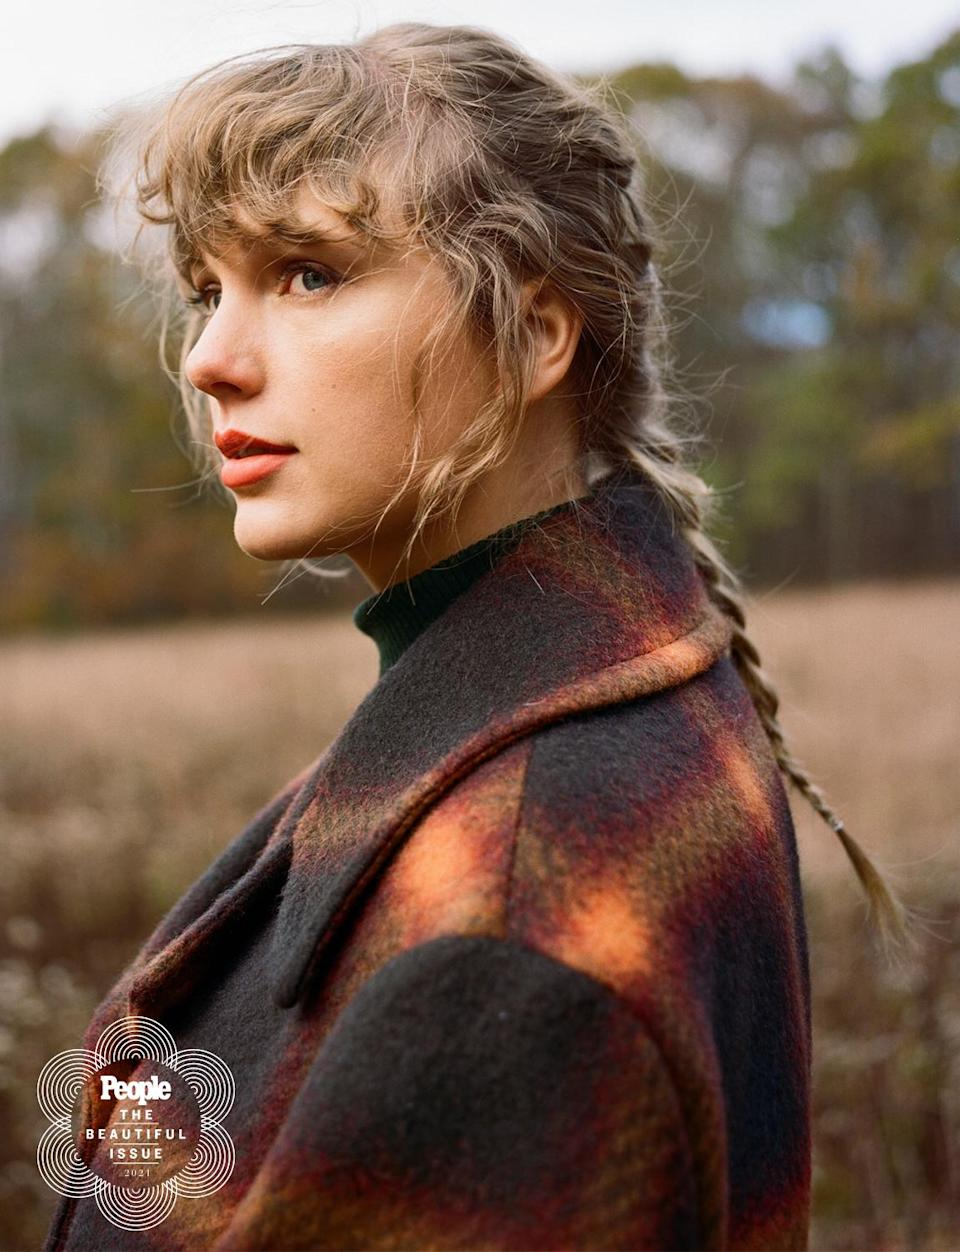 "<p>The singer found beauty in solitude during the pandemic, releasing new music (and winning a Grammy for it!) and continuing her string of good deeds.</p> <p>Most recently Swift, 31, and her mother <a href=""https://people.com/music/taylor-swift-mom-andrea-jointly-donate-50k-dad-of-five-dead-covid/"" rel=""nofollow noopener"" target=""_blank"" data-ylk=""slk:donated $50,000"" class=""link rapid-noclick-resp"">donated $50,000</a> to the family of a father who died of COVID-19. It followed her <a href=""https://people.com/music/taylor-swift-donates-fans-affected-by-coronavirus-crisis/"" rel=""nofollow noopener"" target=""_blank"" data-ylk=""slk:move in the early day of the coronavirus crisis"" class=""link rapid-noclick-resp"">move in the early day of the coronavirus crisis</a>, in which she helped fans make ends meet with surprise $3,000 donations. </p>"